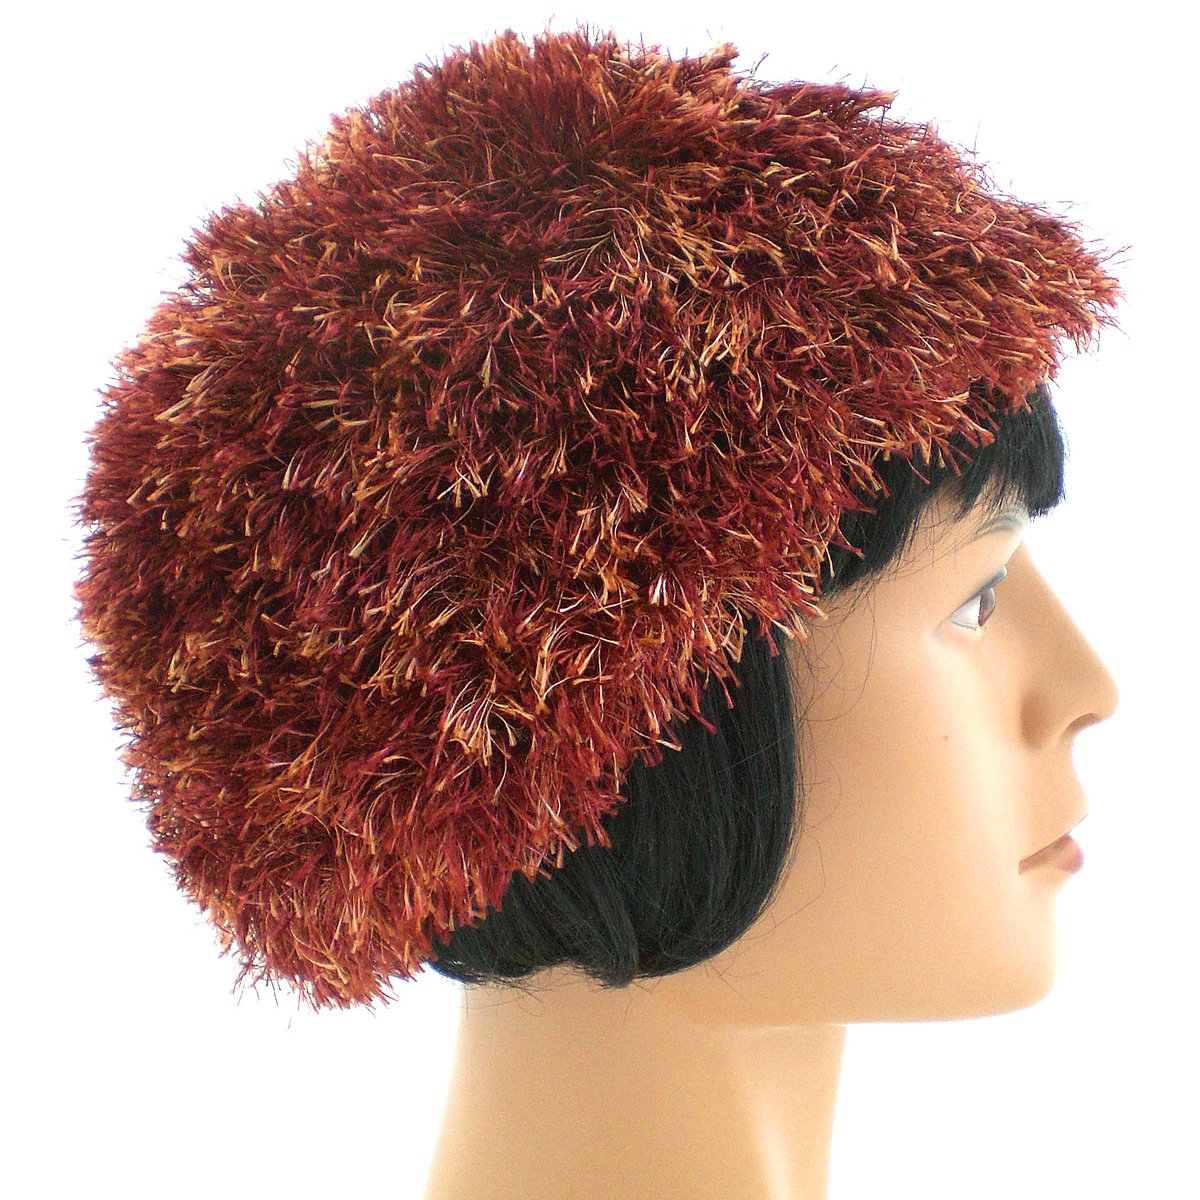 5c9c3debba1 ...  etsysellers https   www.etsy.com uk listing 677004166 chestnut-brown- ladies-winter-hat ref shop home active 1 frs 1 … …pic.twitter.com nN83ZZqy49